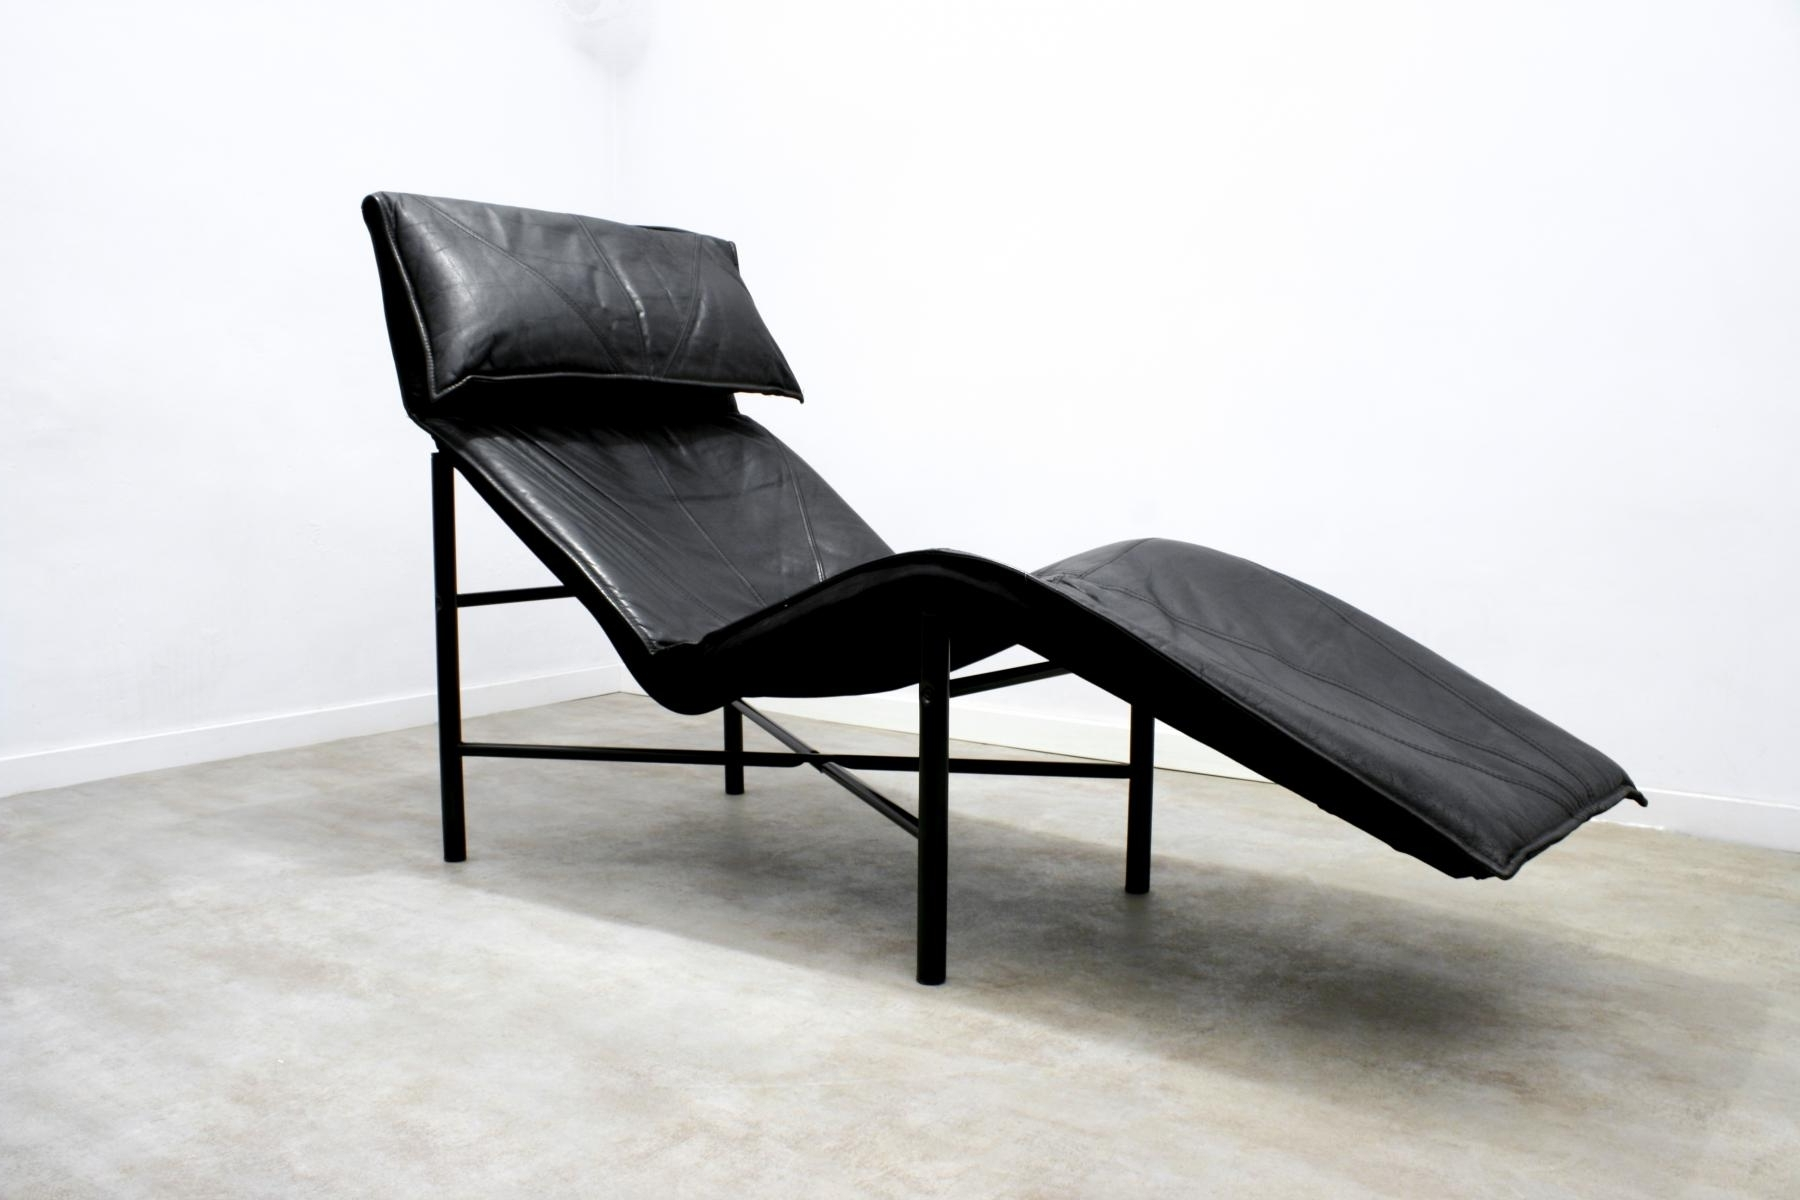 Ikea Chaise Longues With Widely Used Black Leather Skye Chaise Longuetord Björklund For Ikea, 1980S (View 15 of 15)